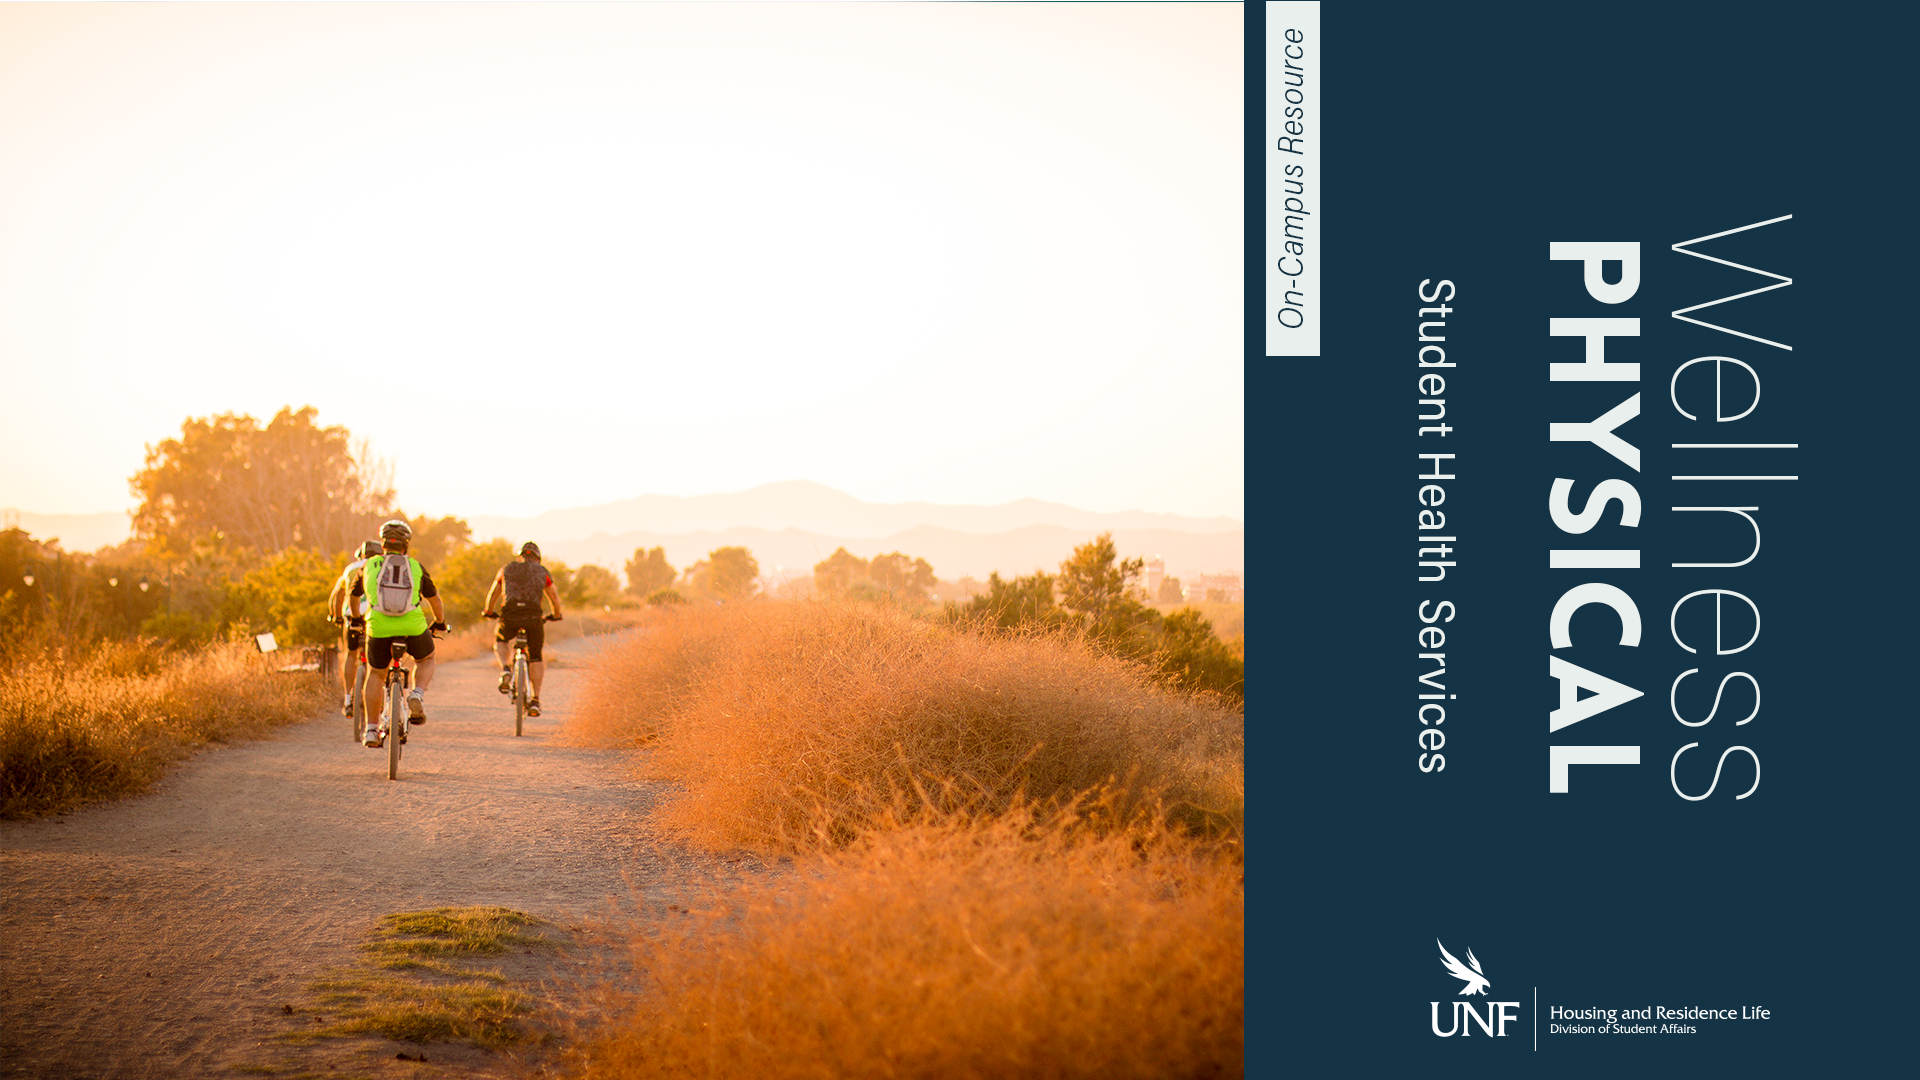 Wellness physical student health services on campus resource - people biking on a path